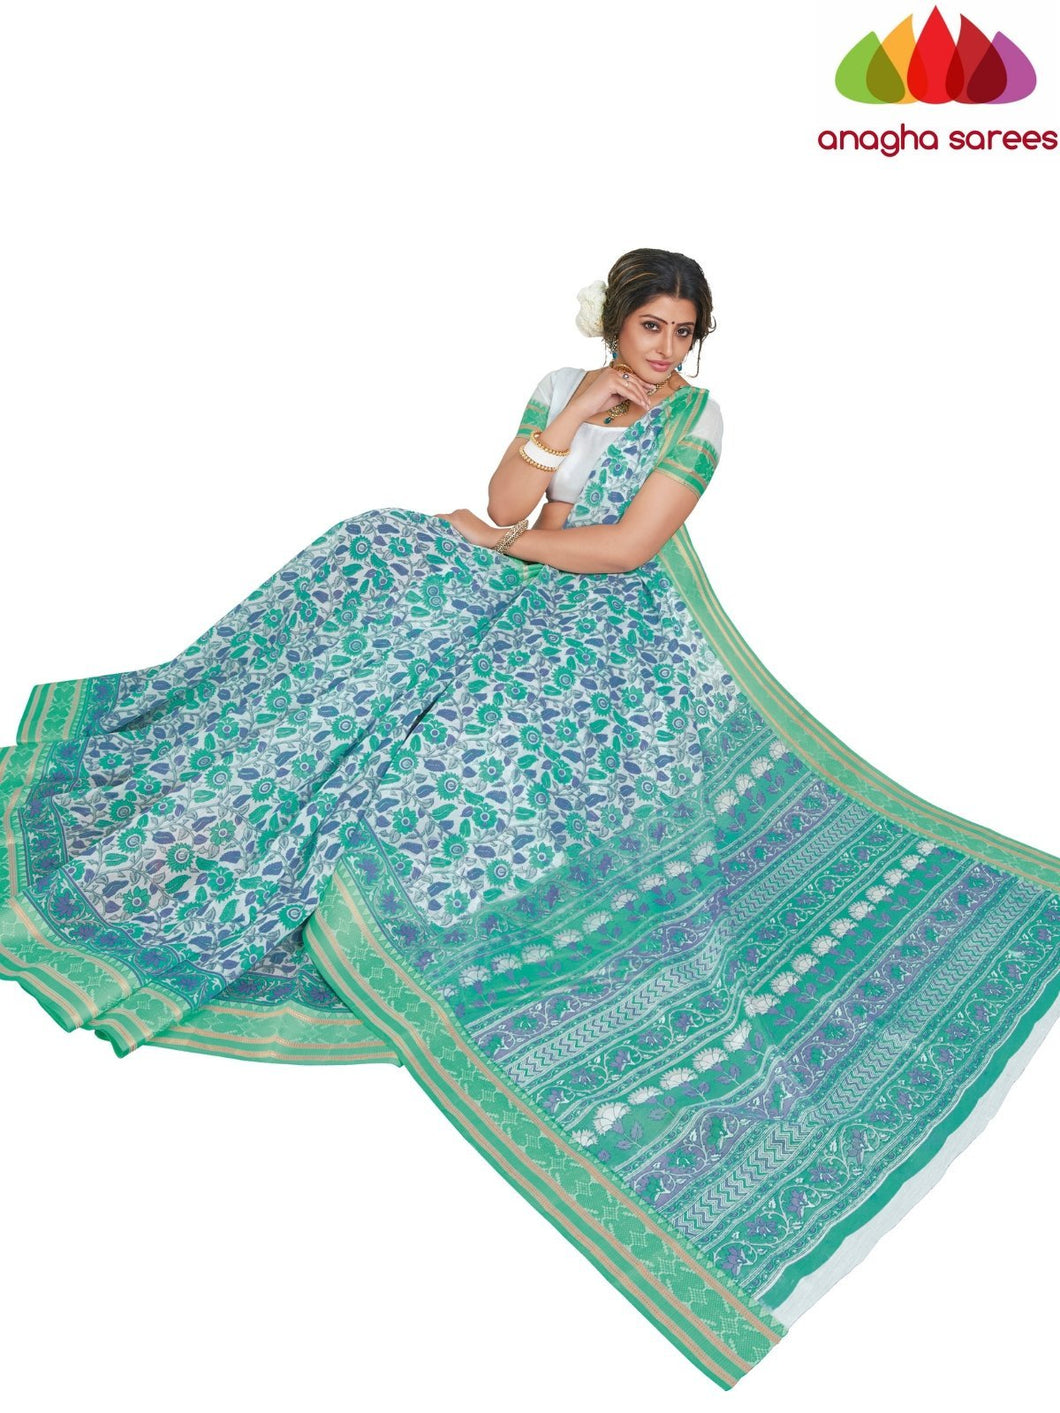 Anagha Sarees Cotton saree Standard / Multicolor Fancy Cotton Saree - Multicolor : ANA_L09